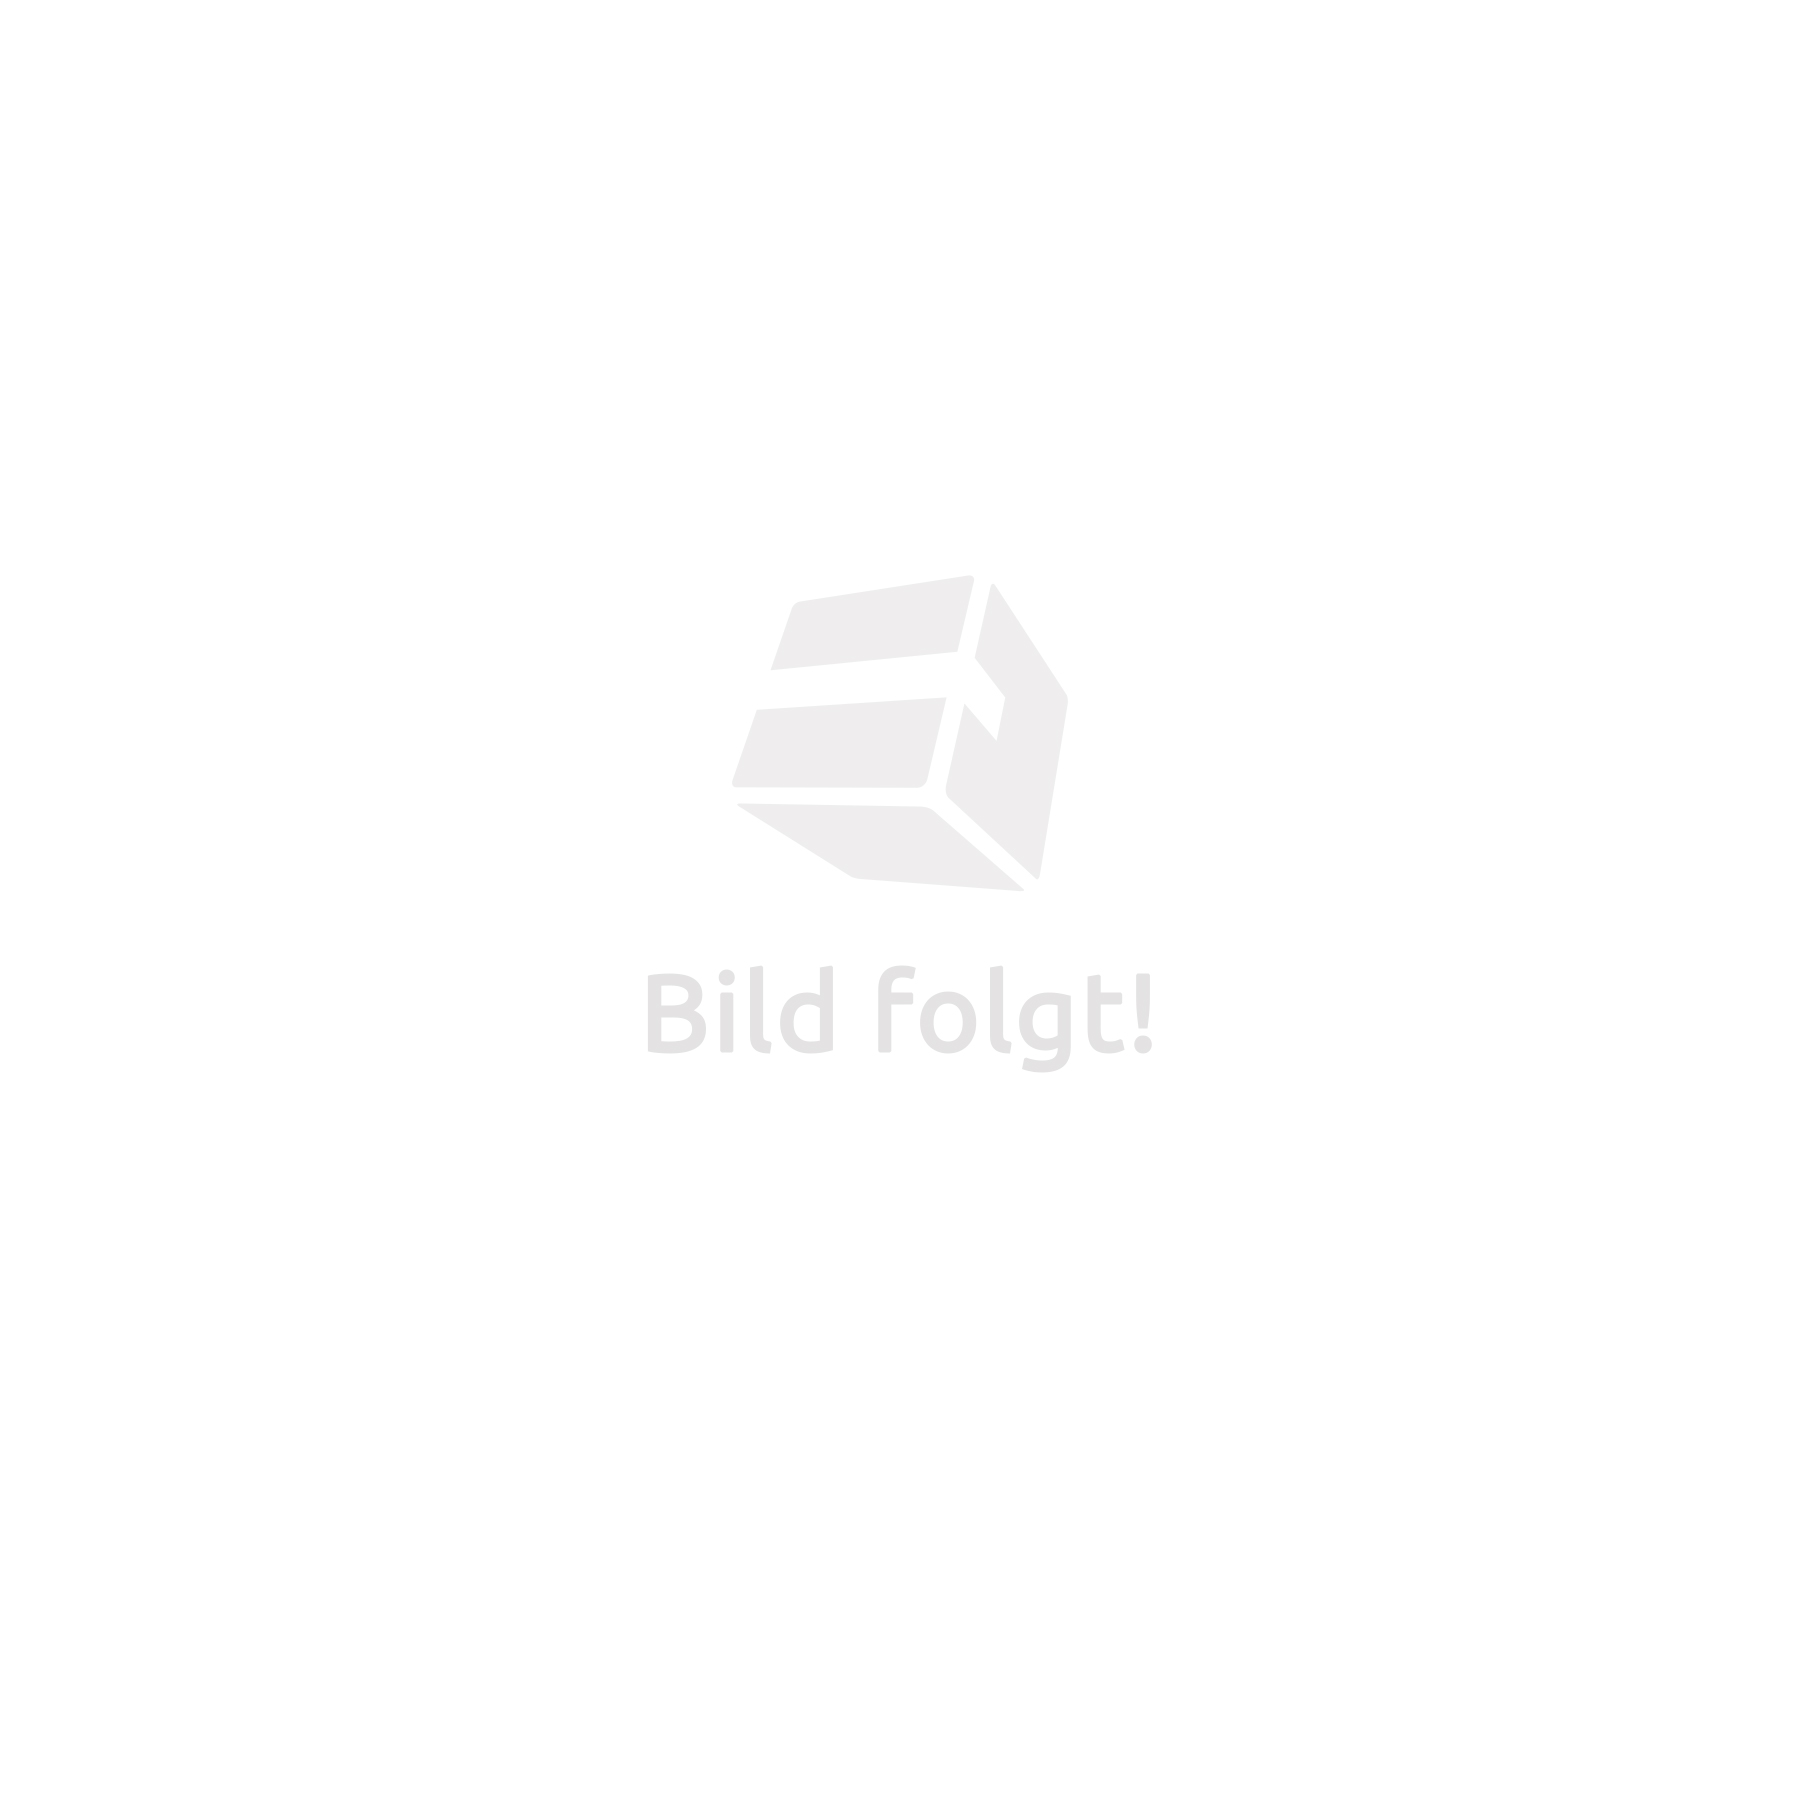 Rattan garden furniture set Lissabon 6+1 with protective cover black